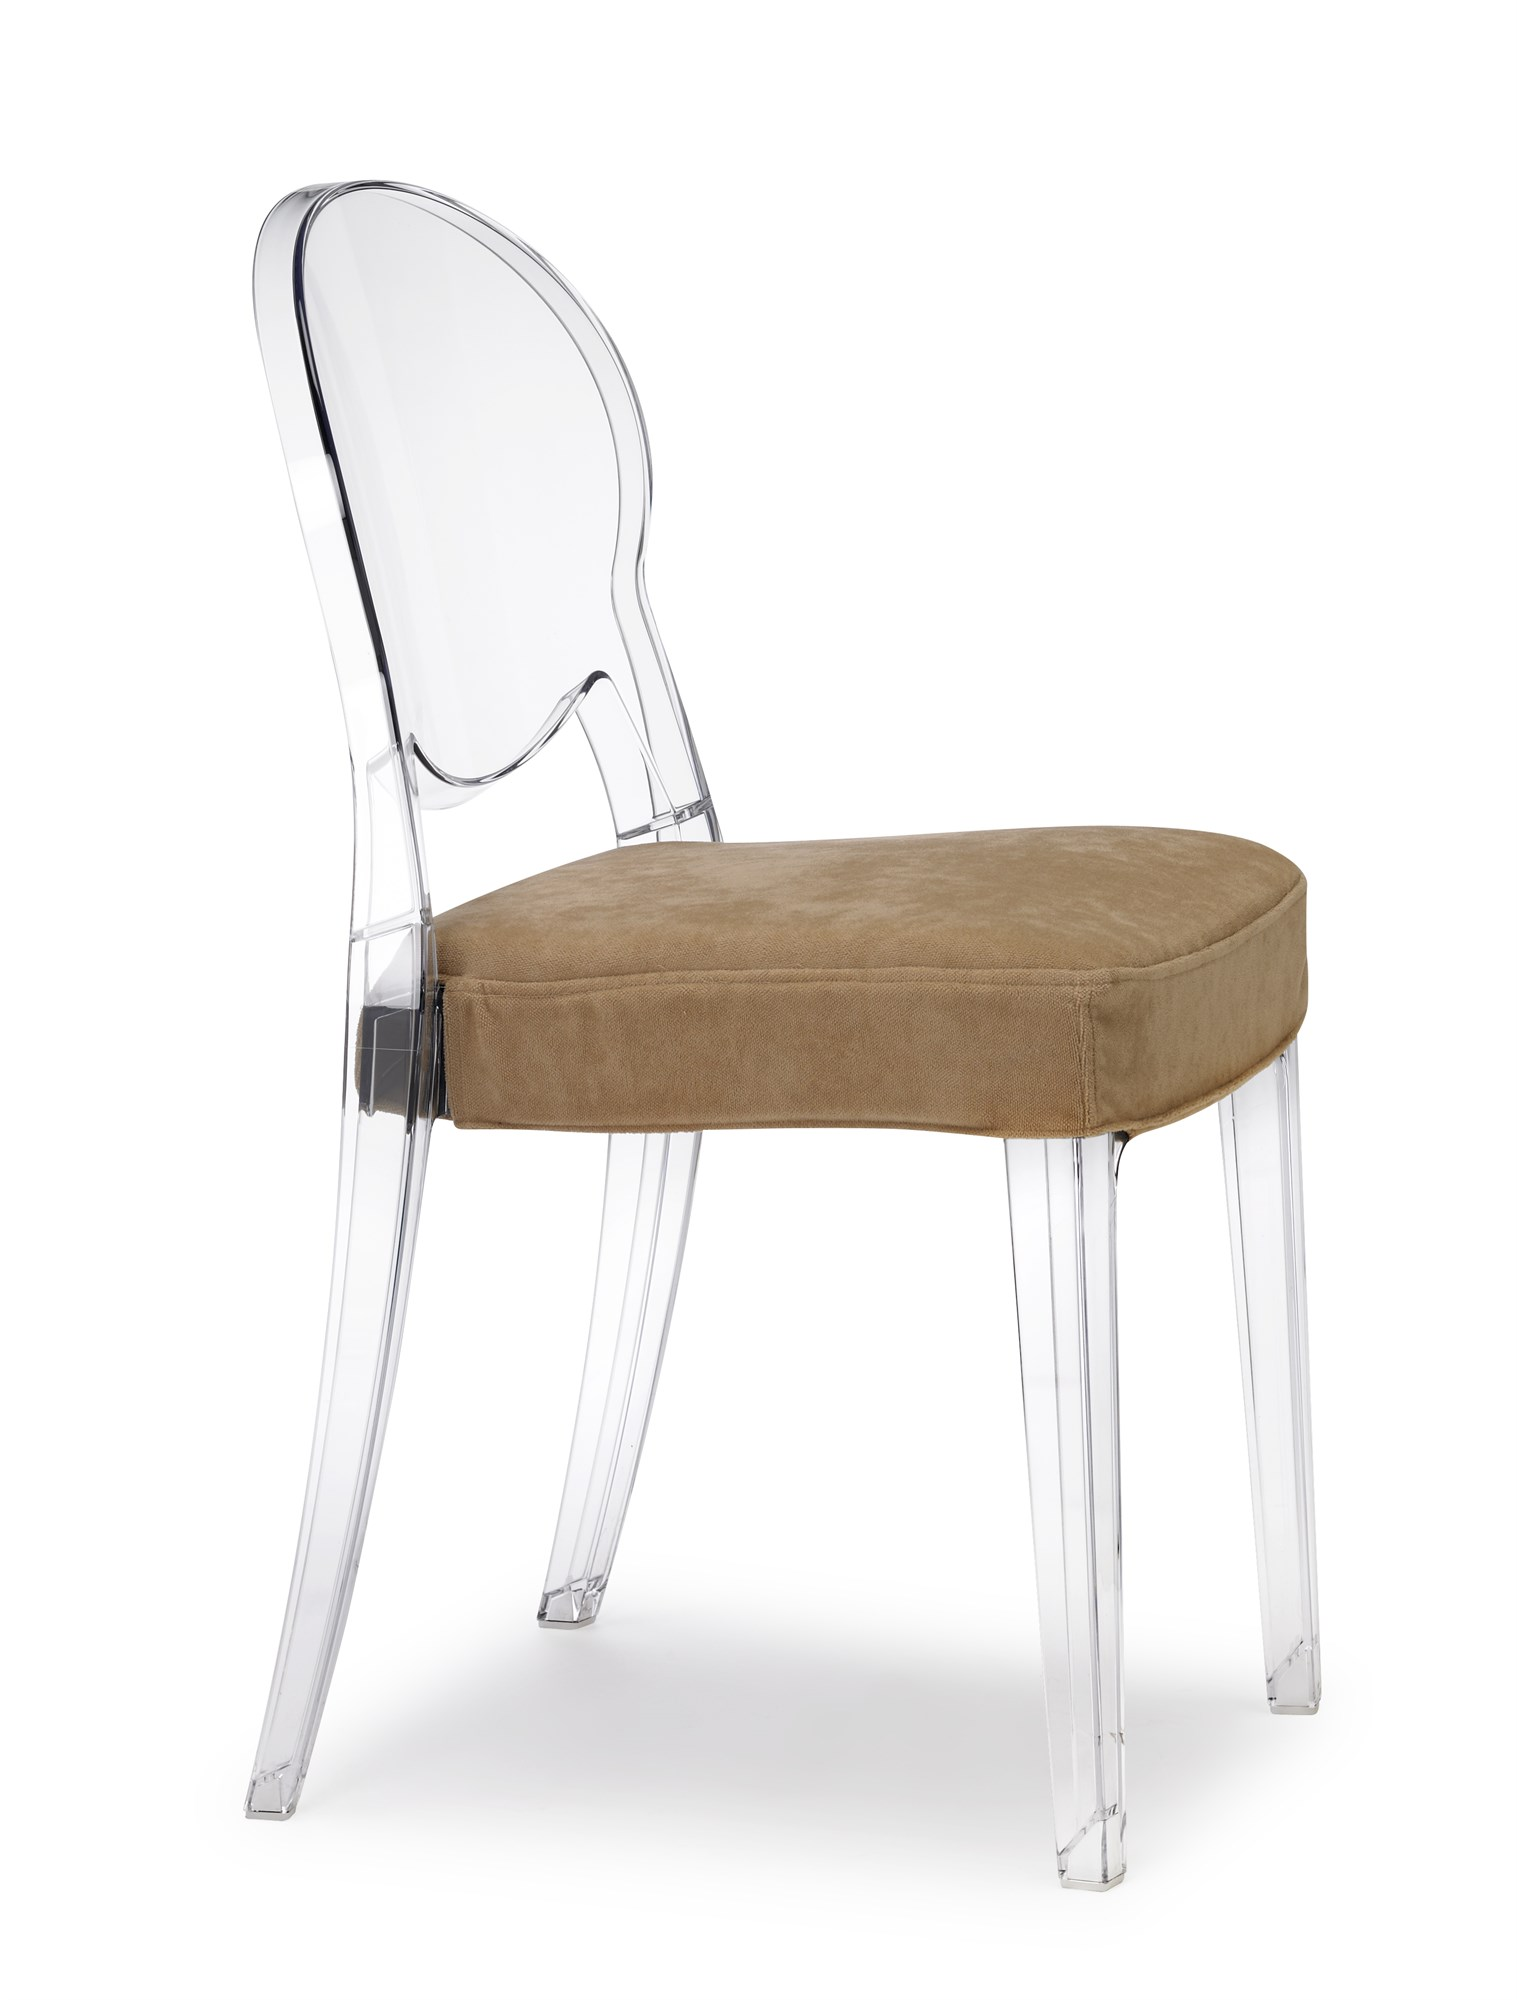 Set 2 cuscini per sedia igloo chair scab design scab - Cuscini sedie cucina ...